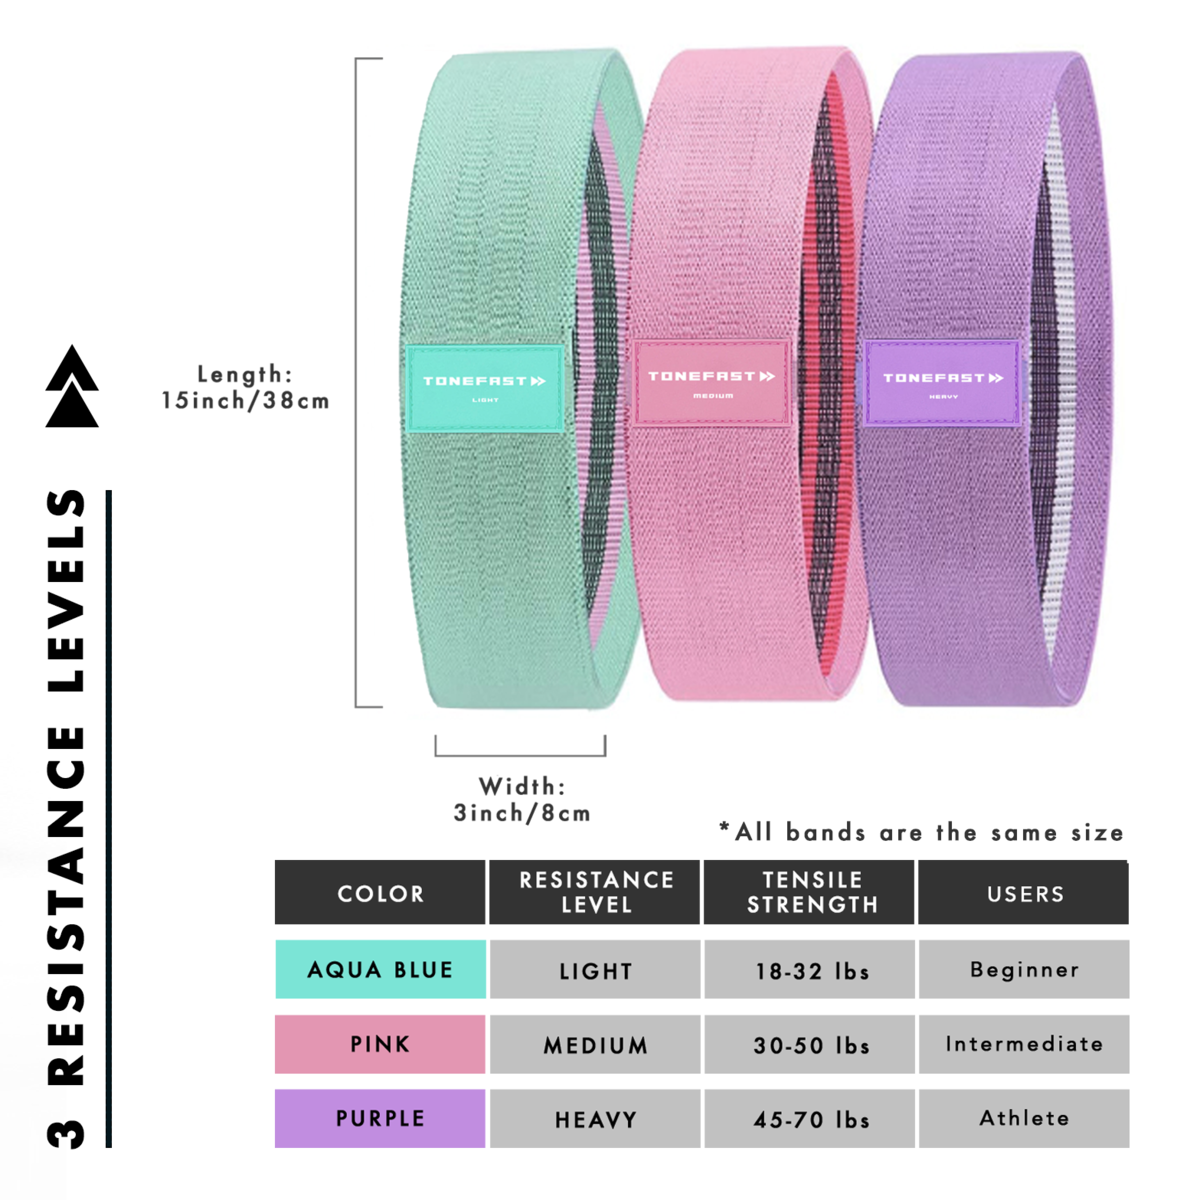 Glute Resistant Bands Working Out Bands for Butt Workout Booty Bands